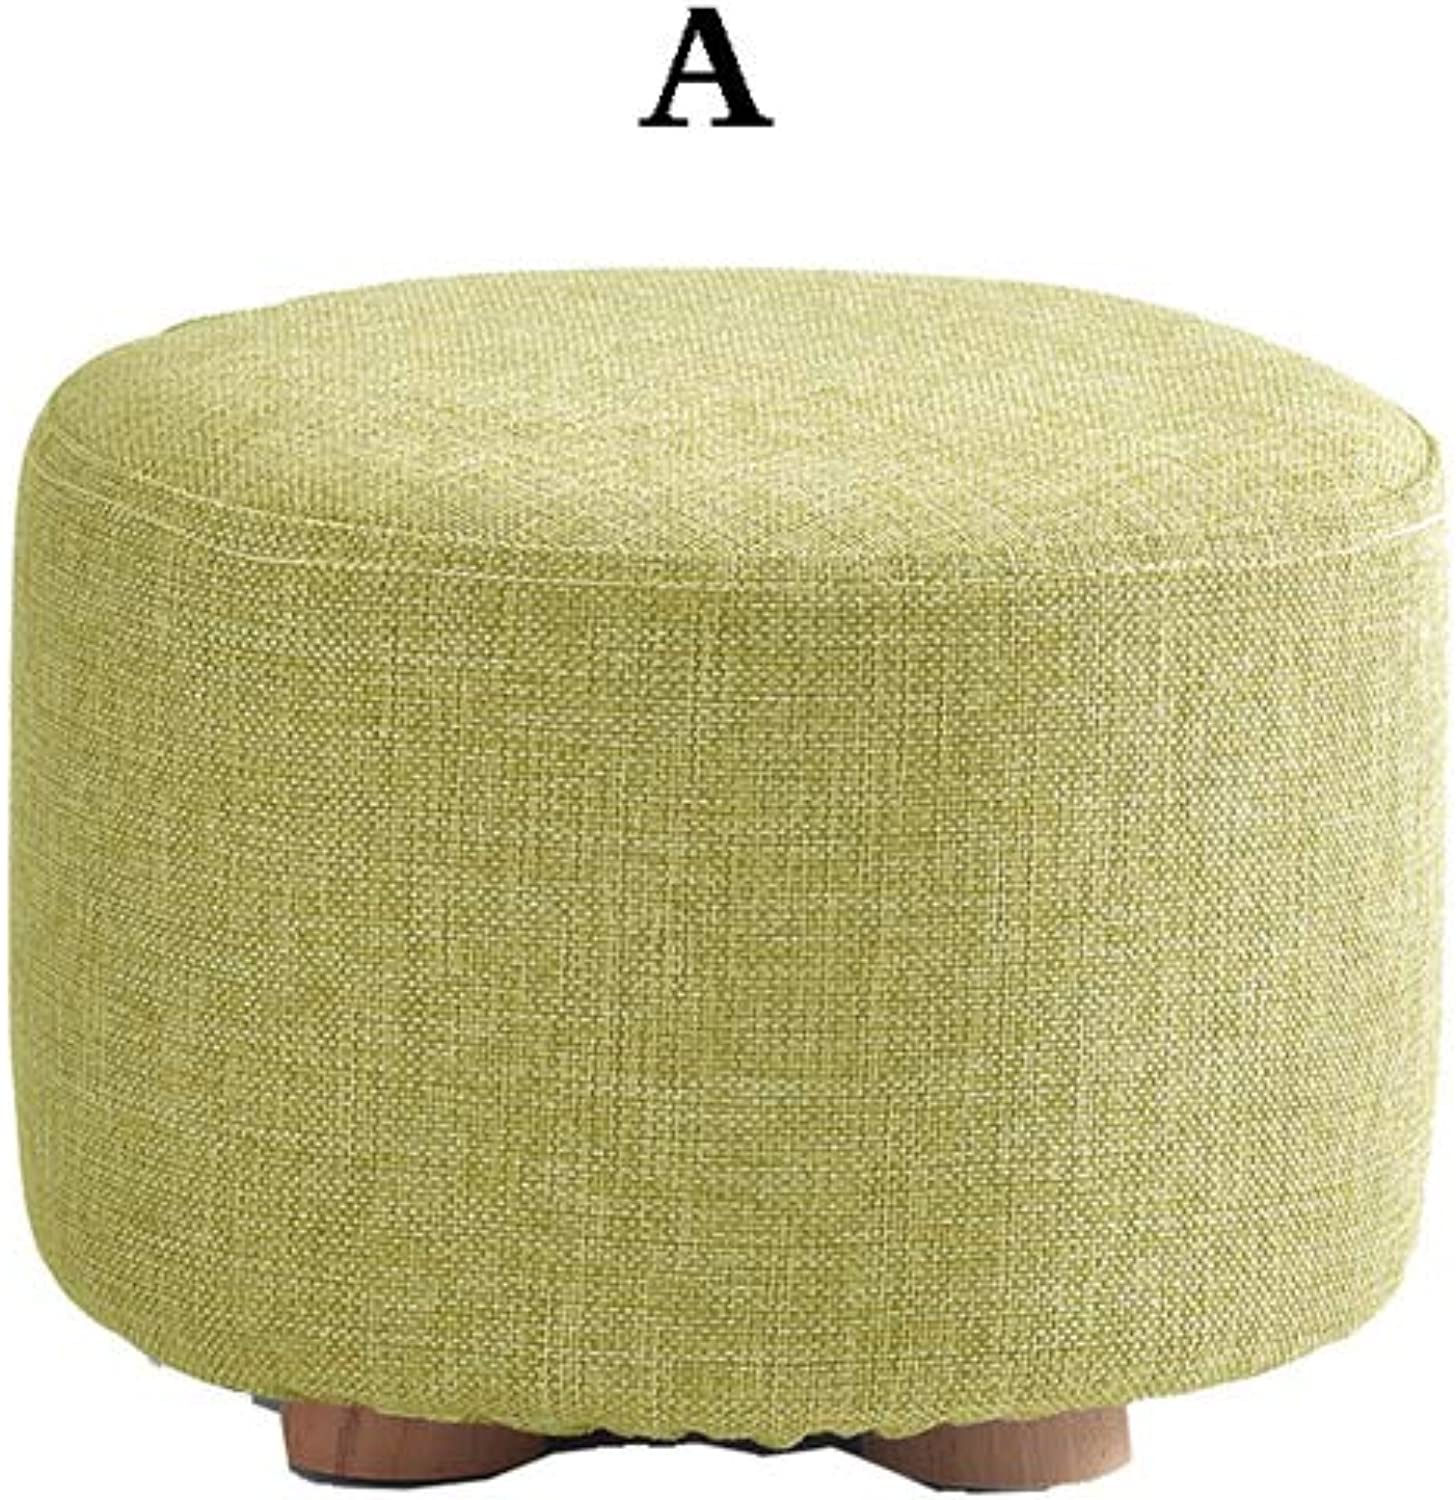 Small Stools, Solid Wood Sofa Bench, shoes Bench, Fashion Suit, Detachable, Storage, Household Items, Multi-Style (color   A)